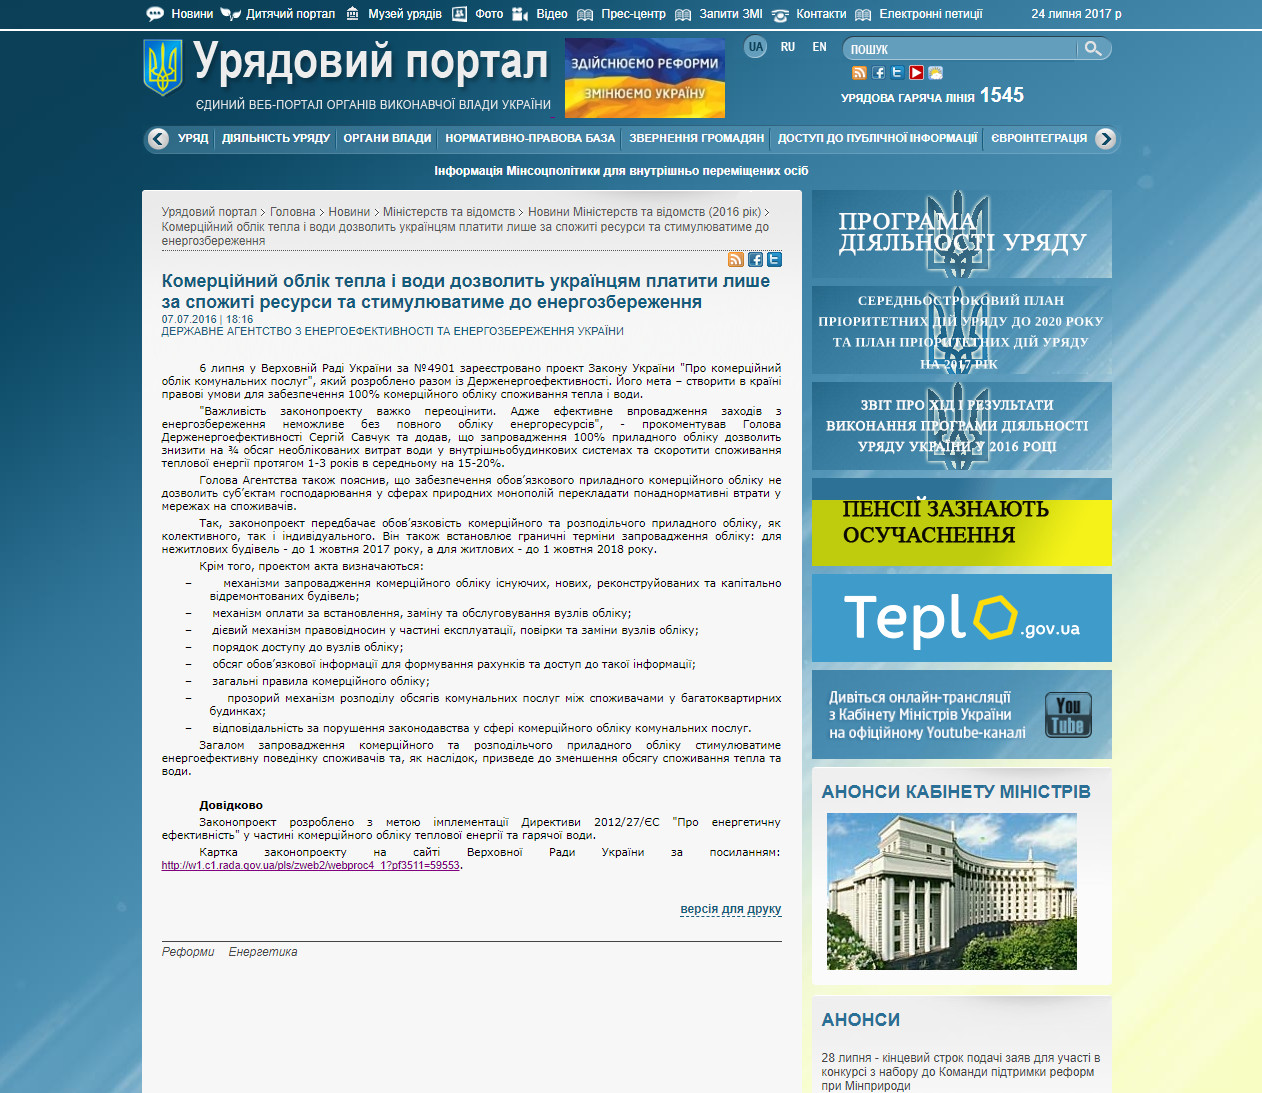 http://www.kmu.gov.ua/control/uk/publish/article?art_id=249171428&cat_id=244277212